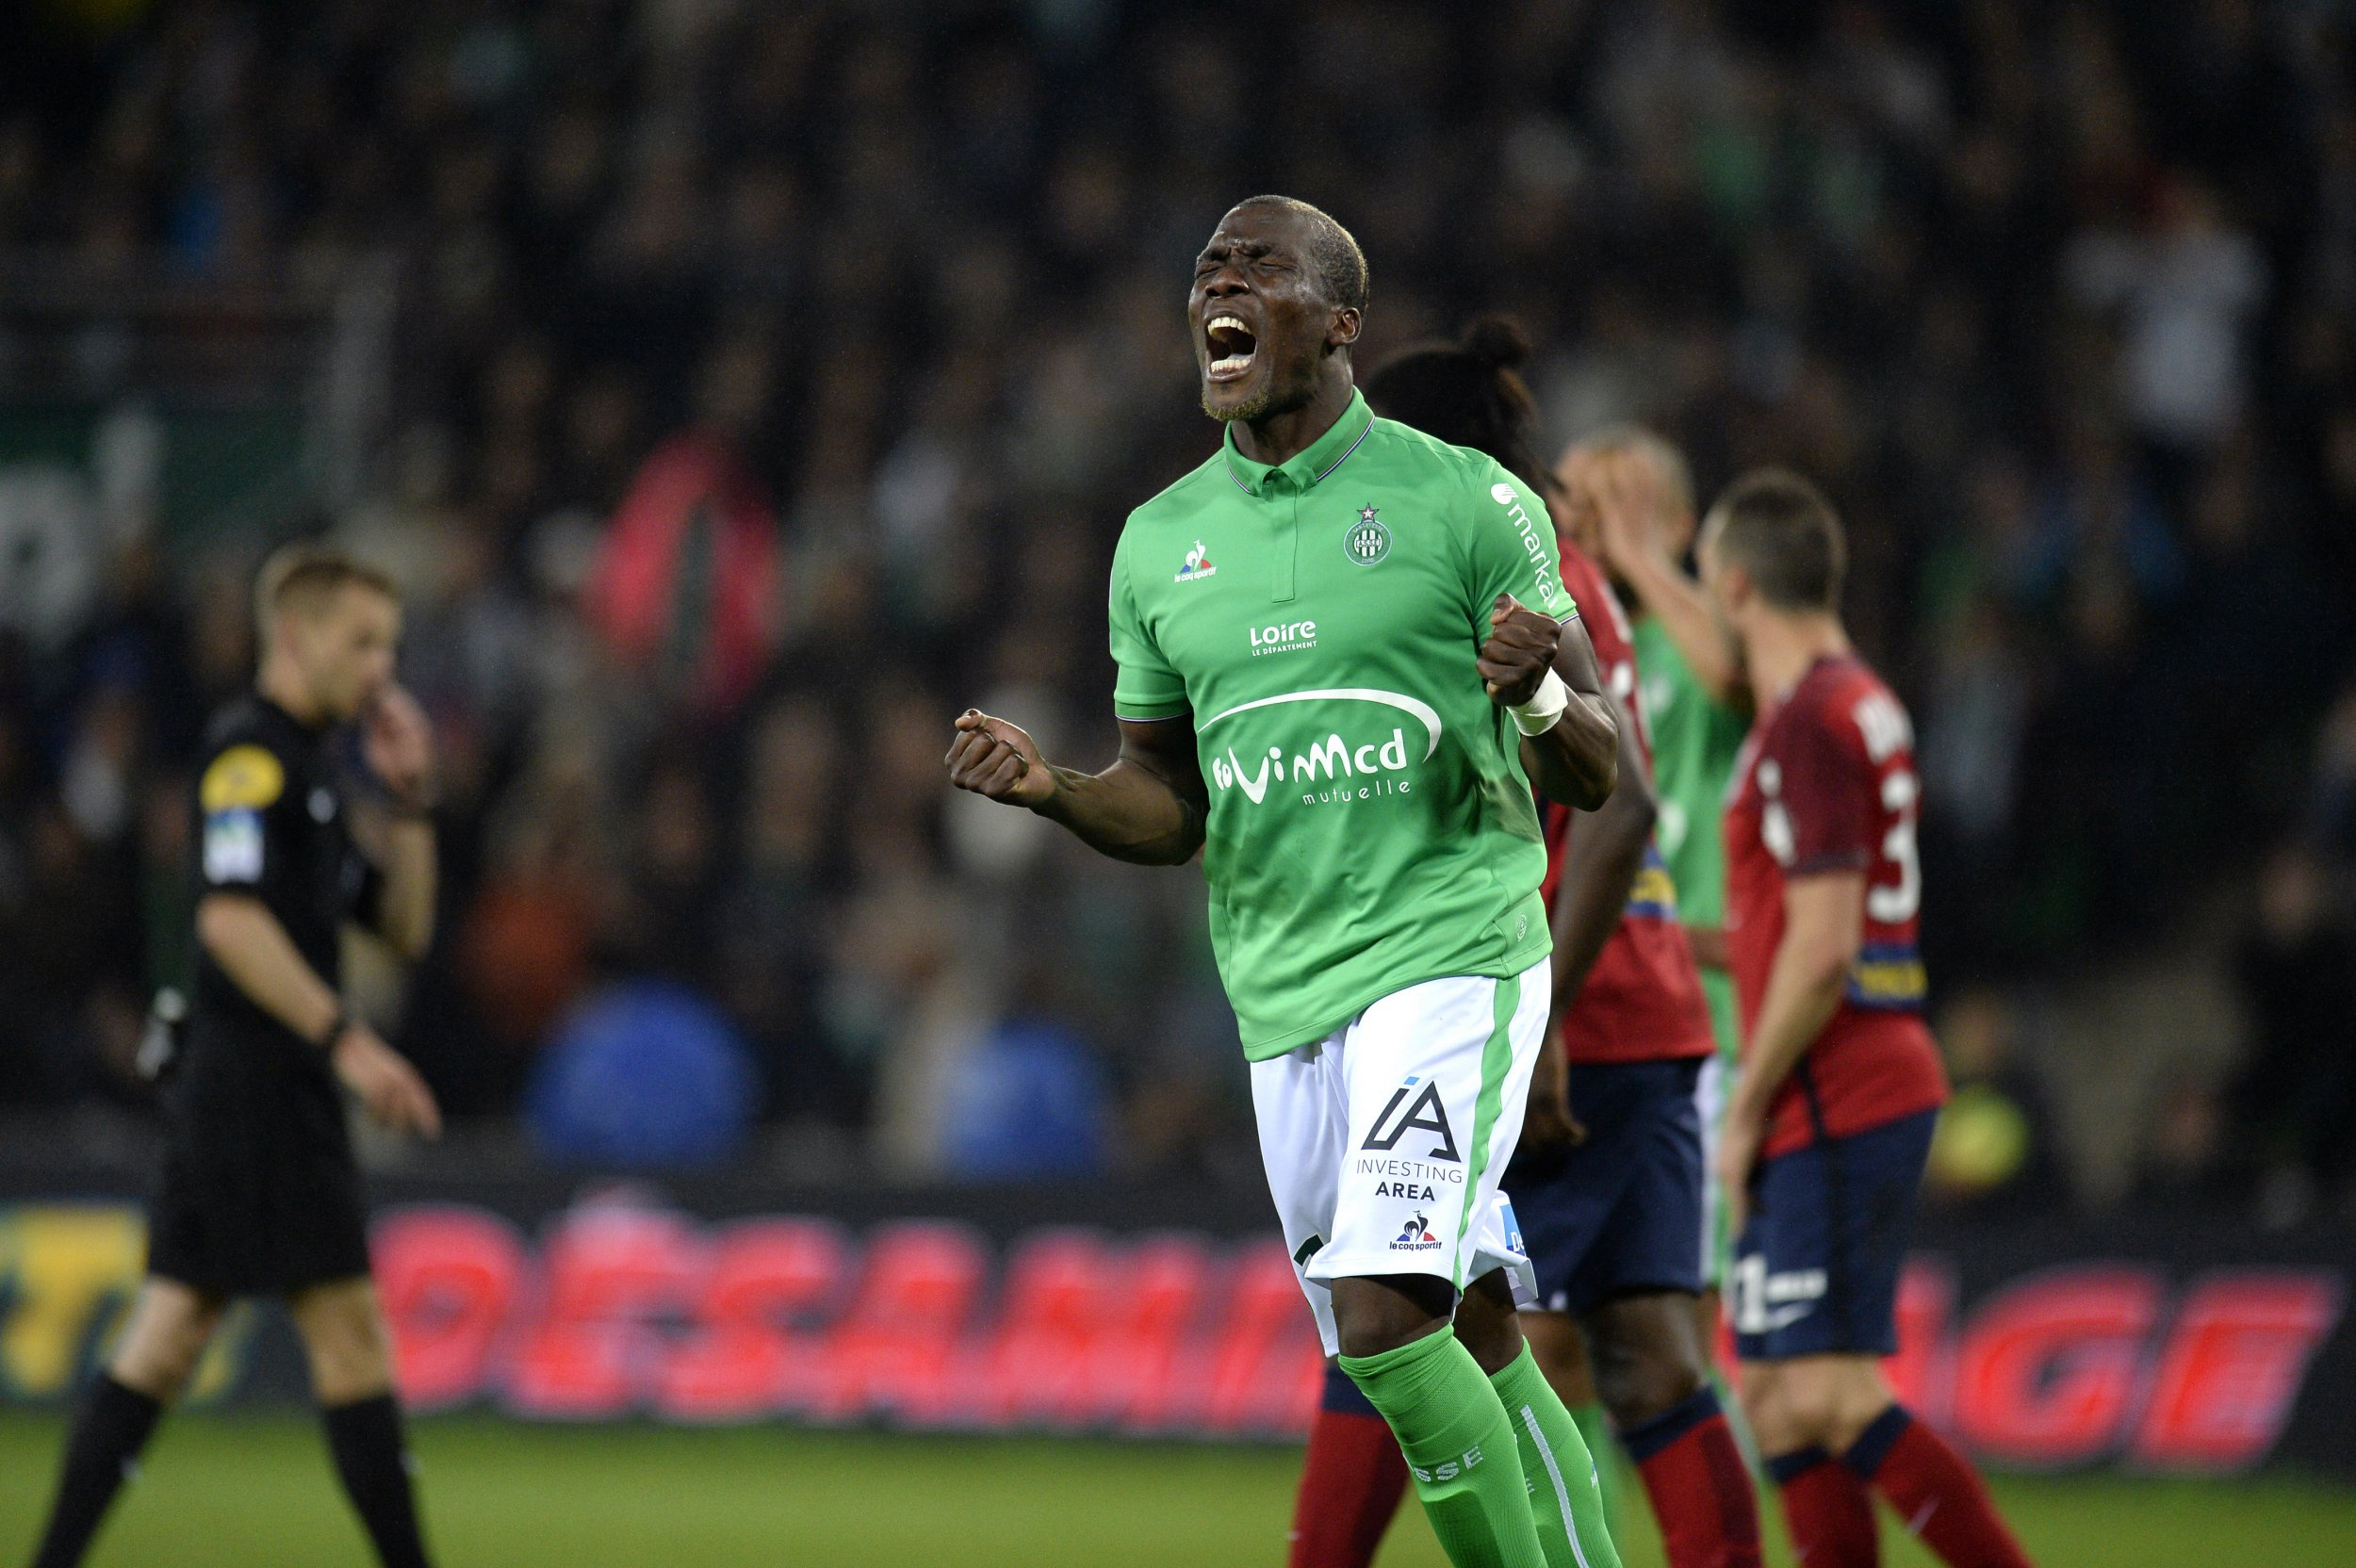 Saint-Etienne defender Florentin Pogba, brother of Manchester United star Paul.